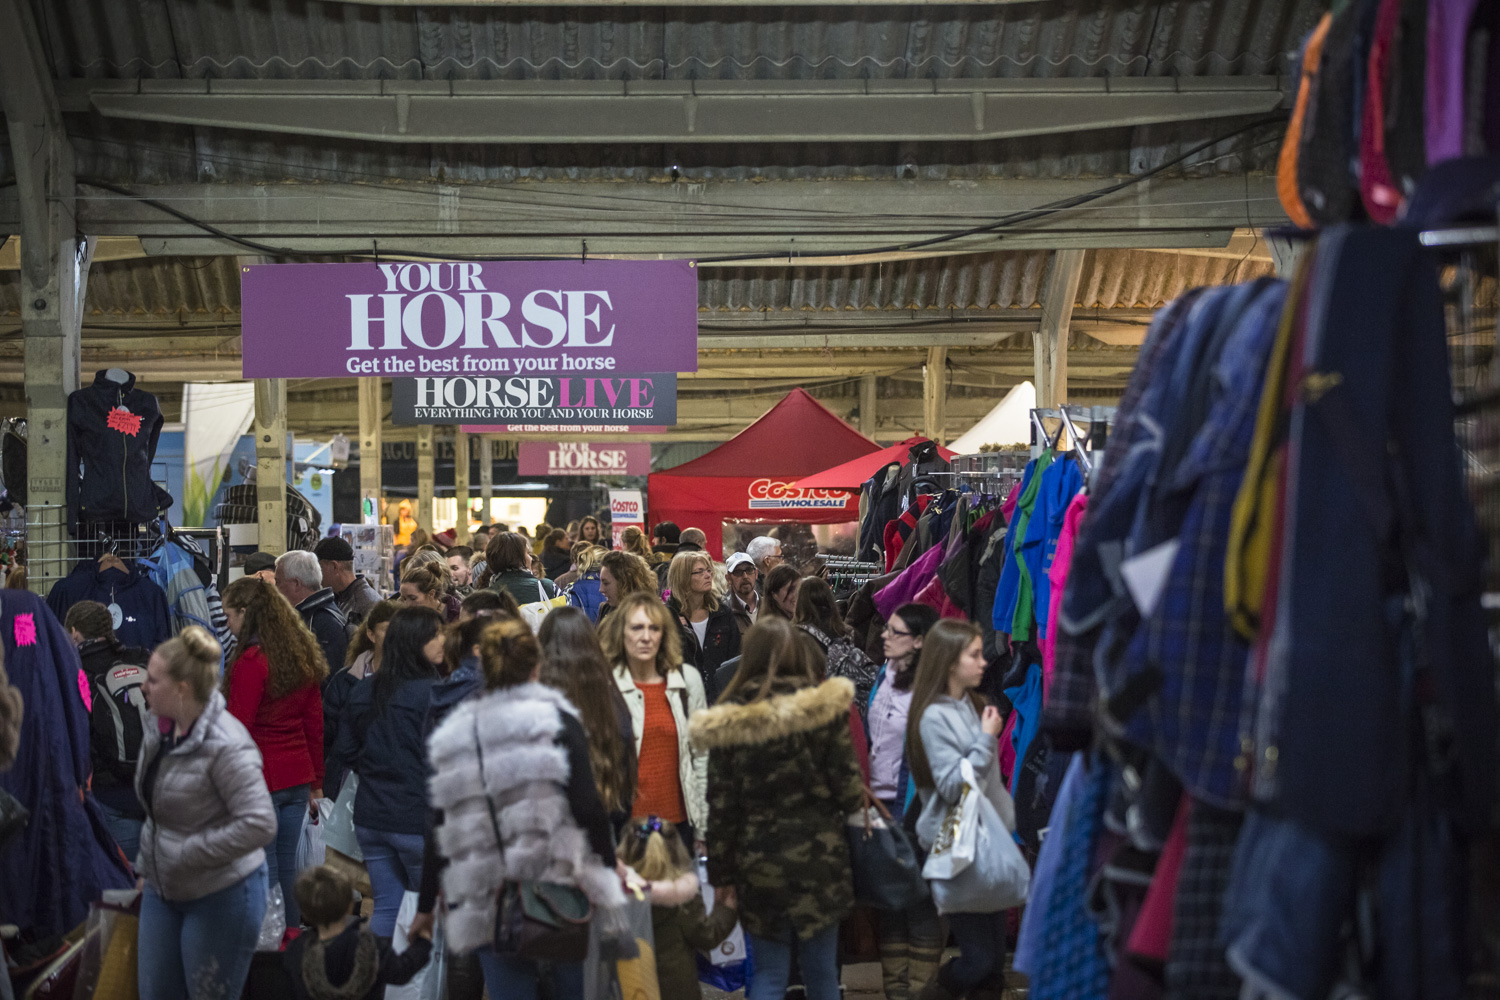 Major horse event expands at Stoneleigh